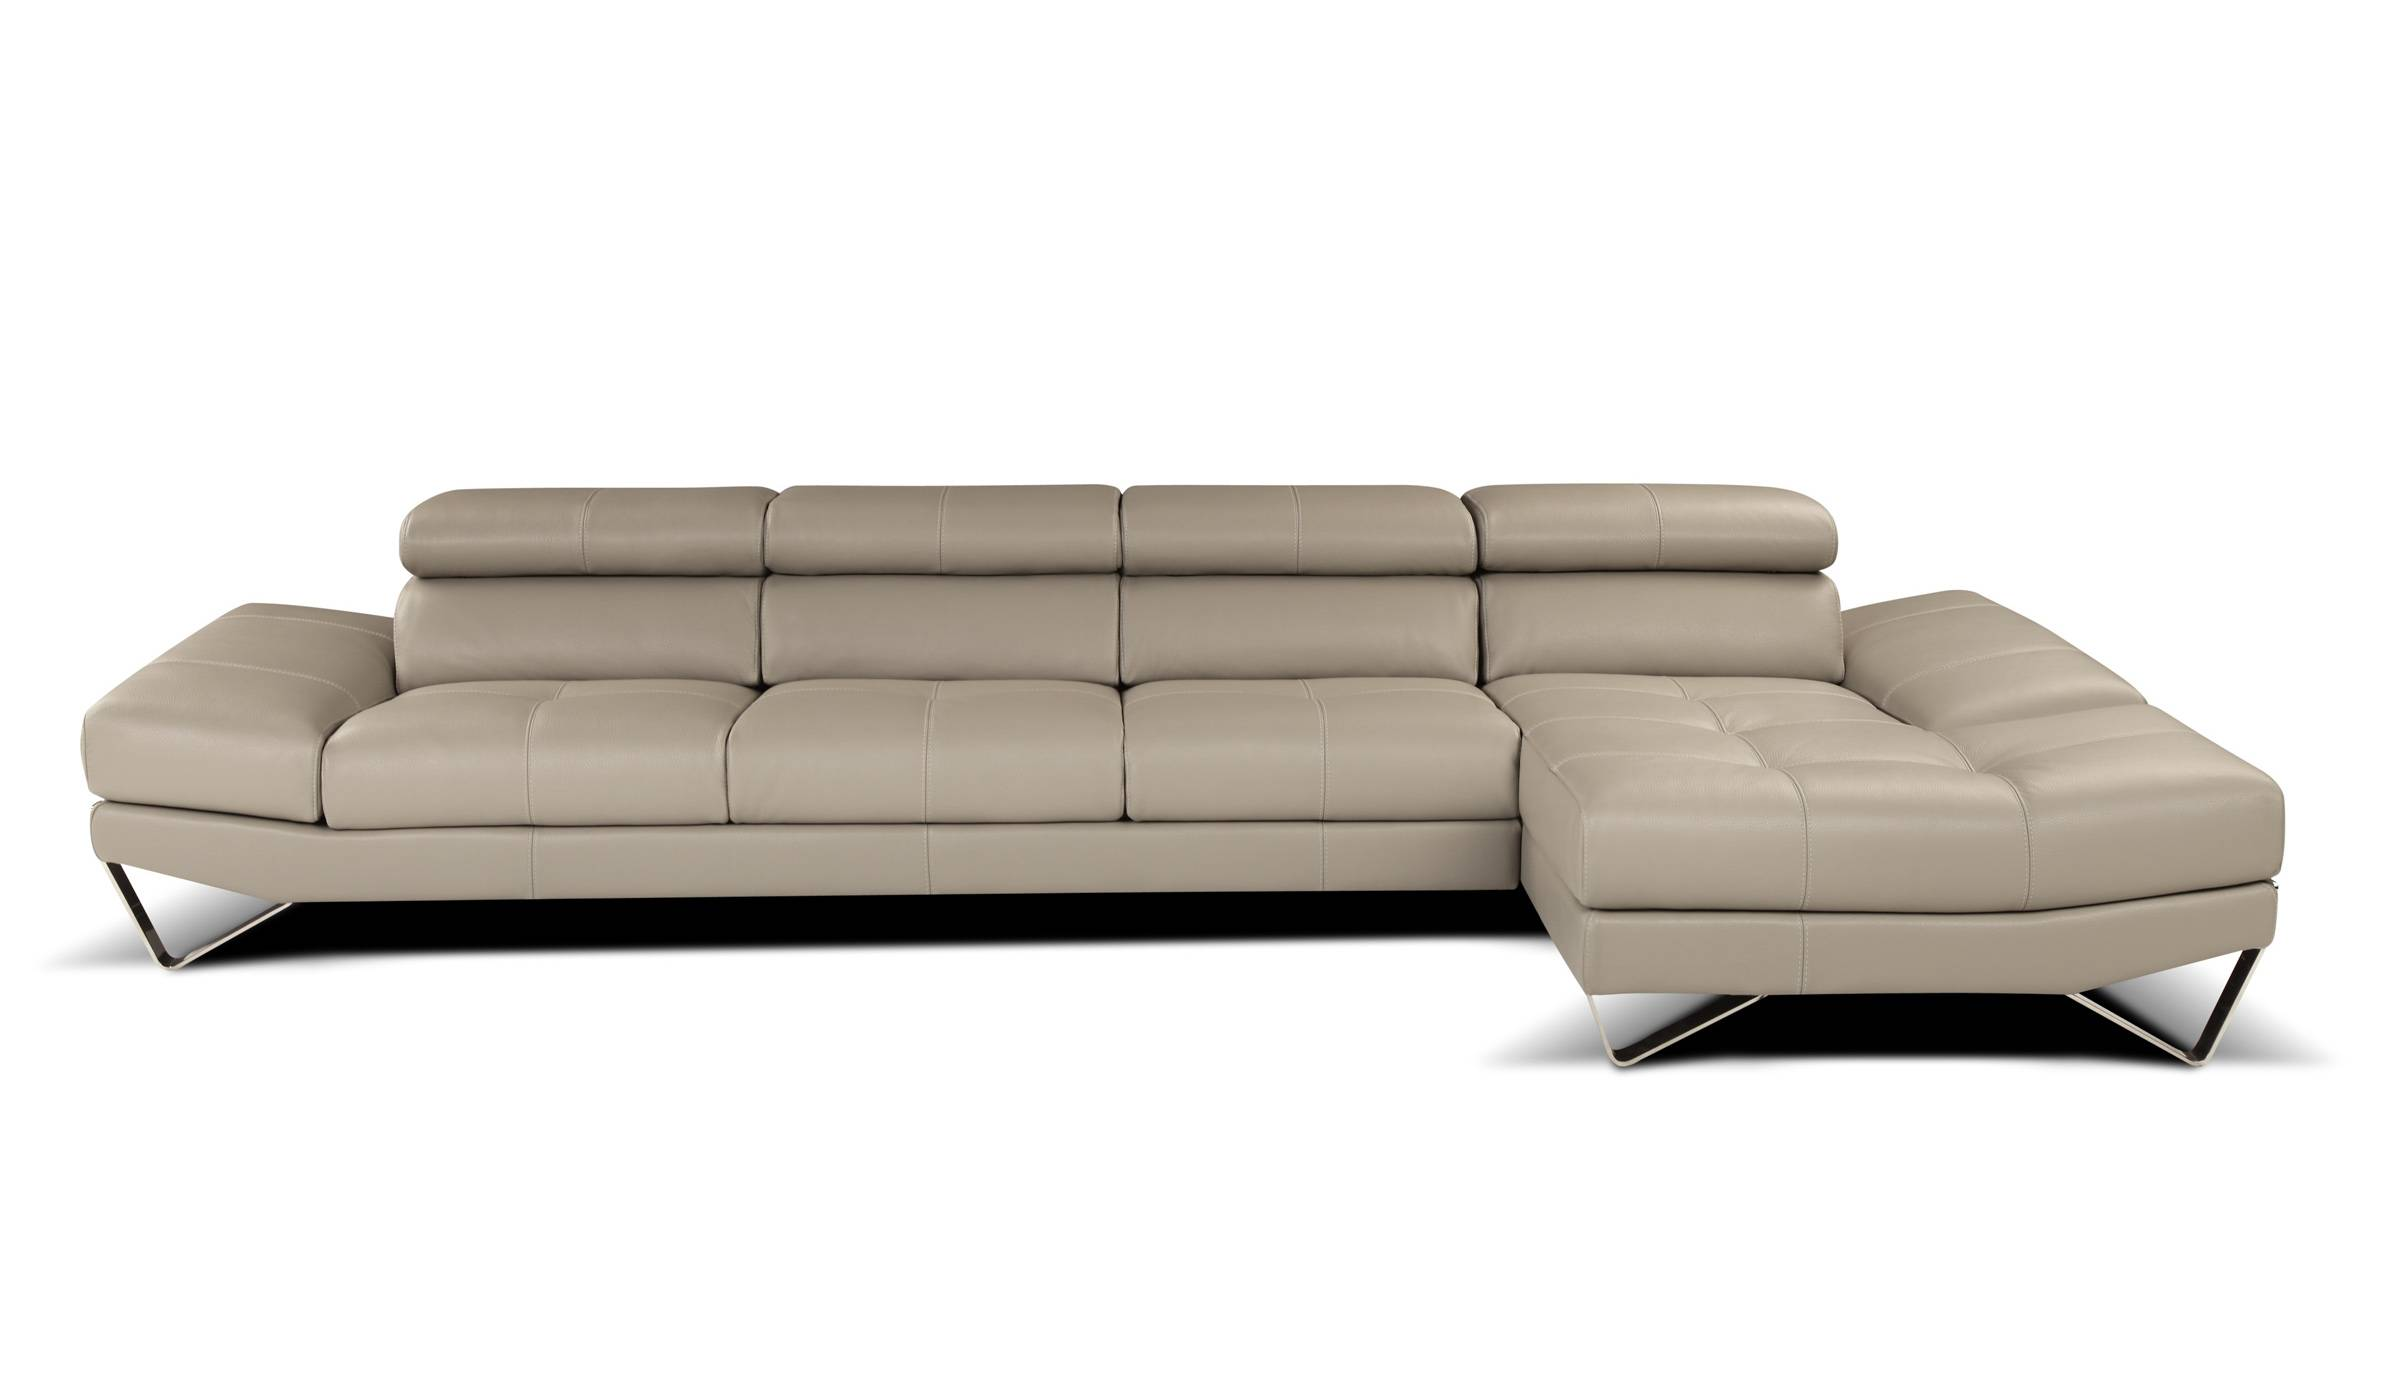 Superbe Genuine And Italian Leather, Corner Sectional Sofas